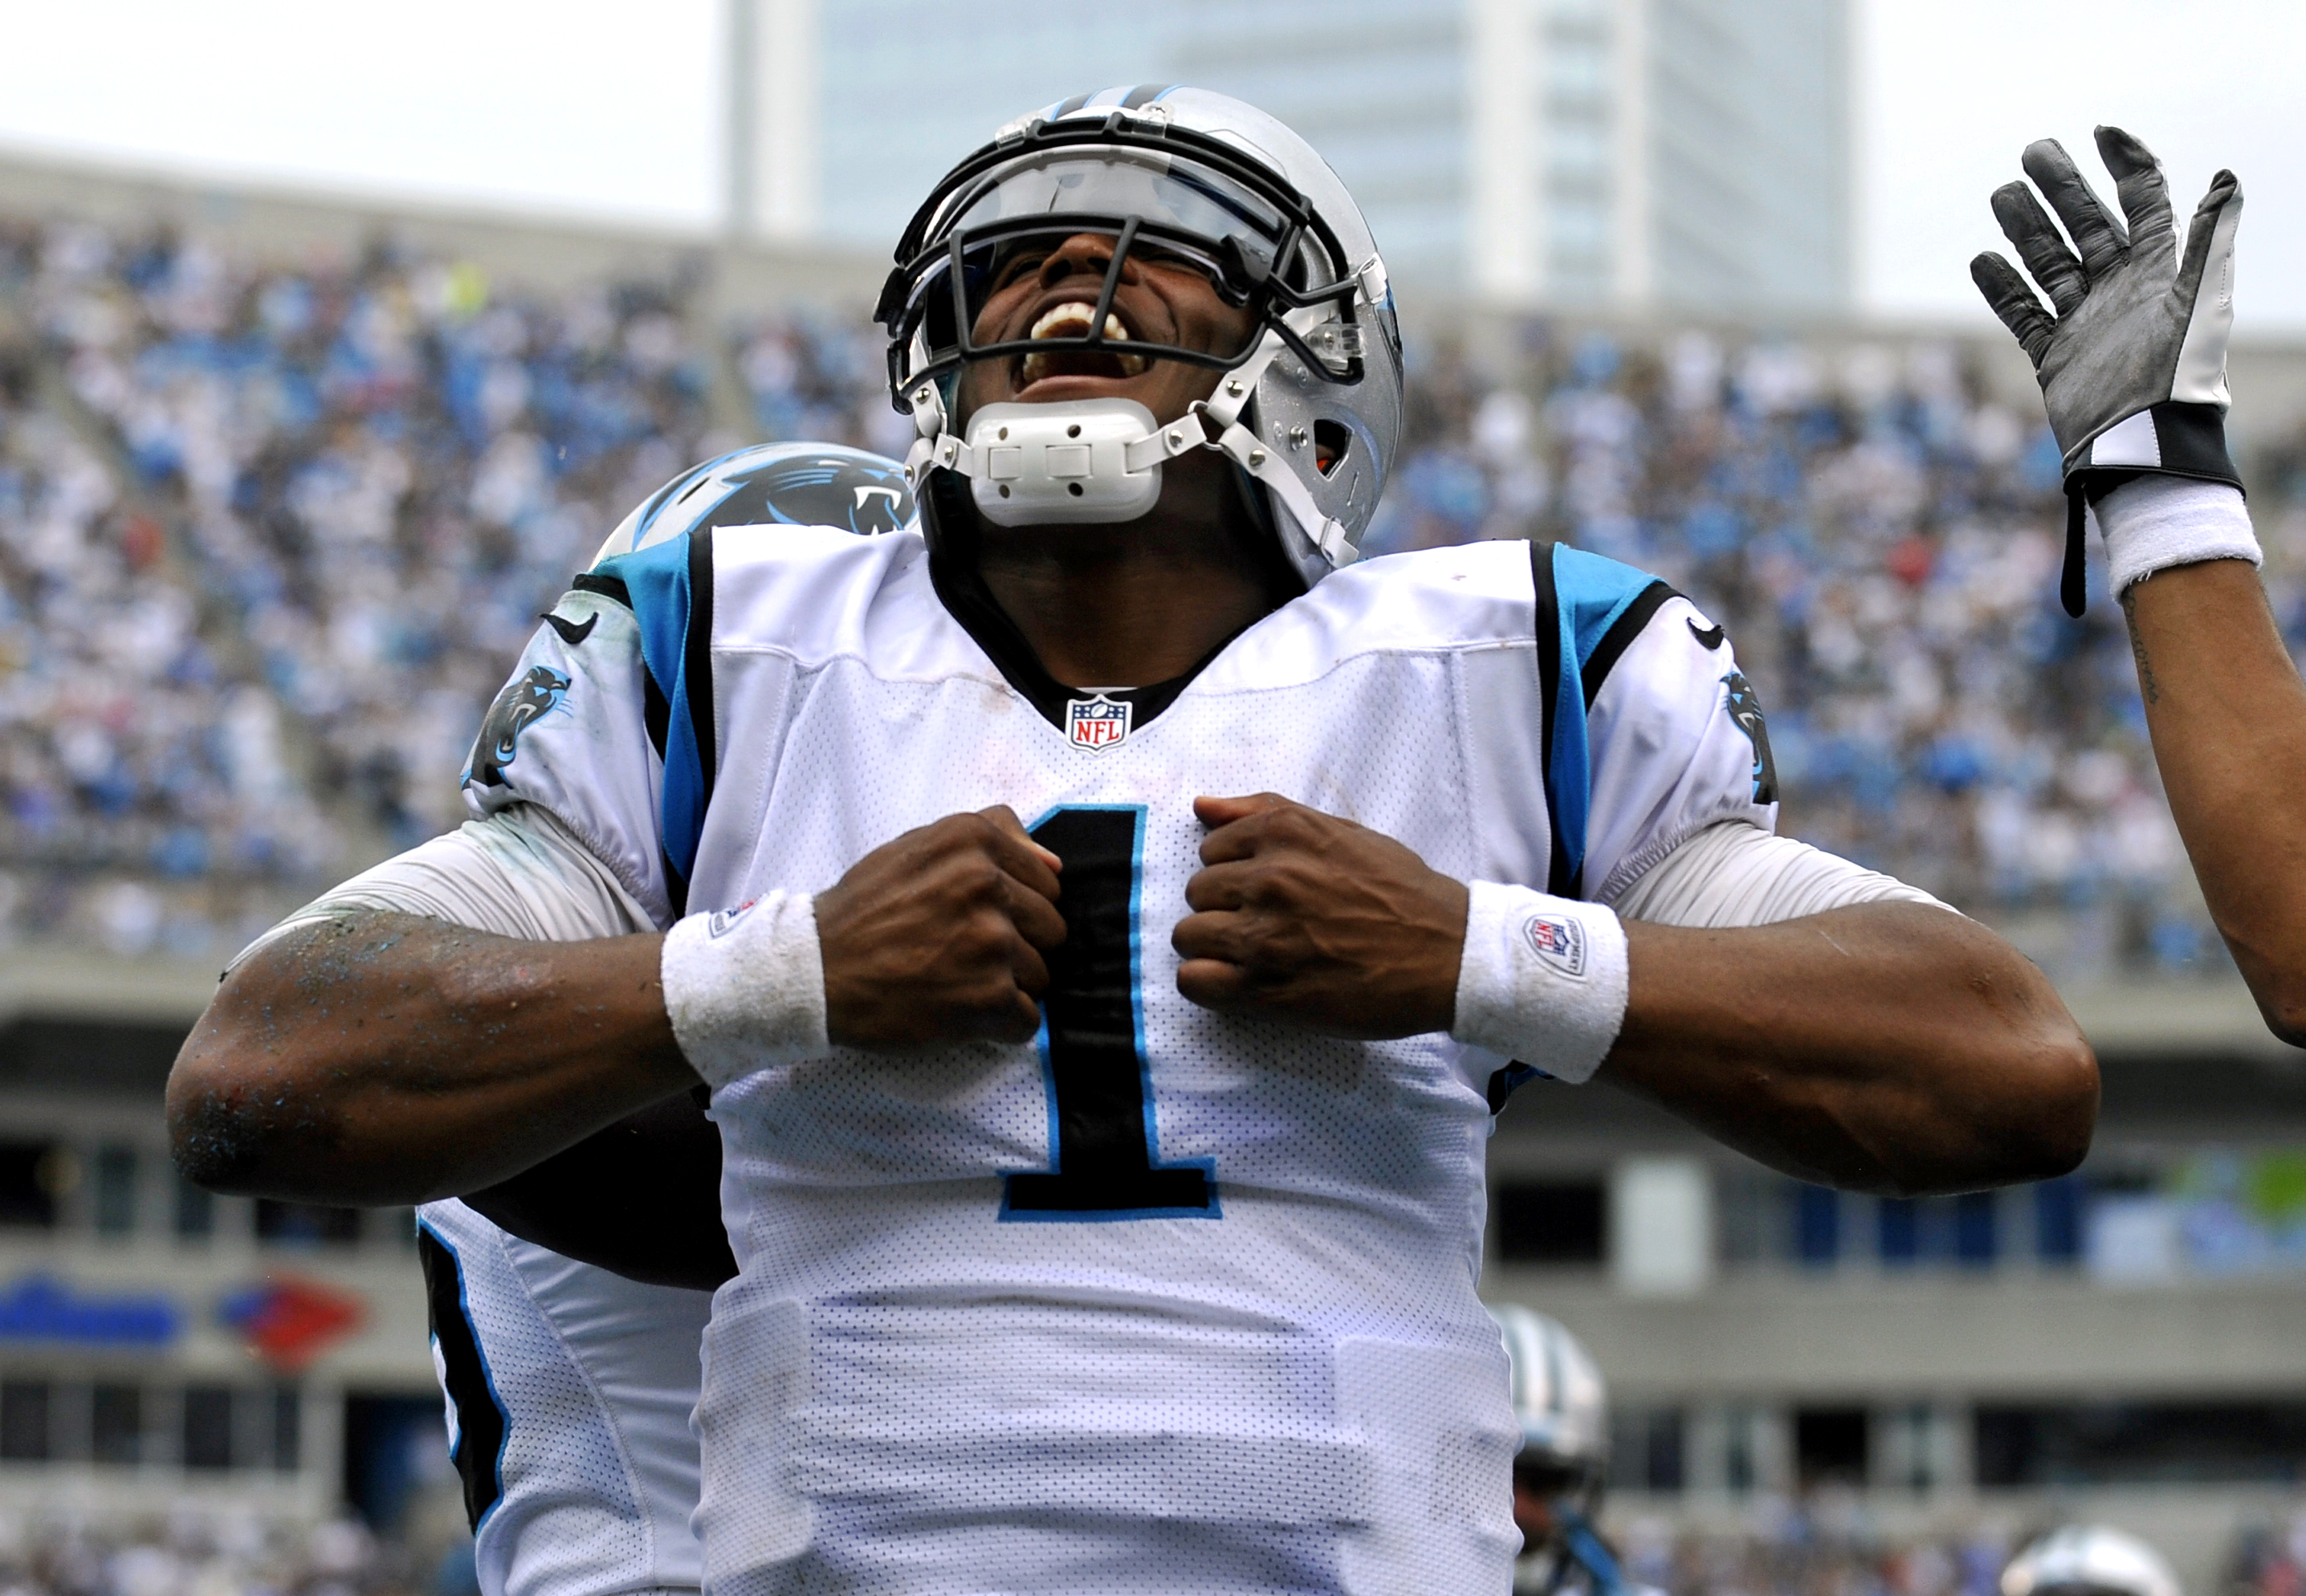 Seattle Radio Station Asks Listeners Is Cam Newton A Jackass